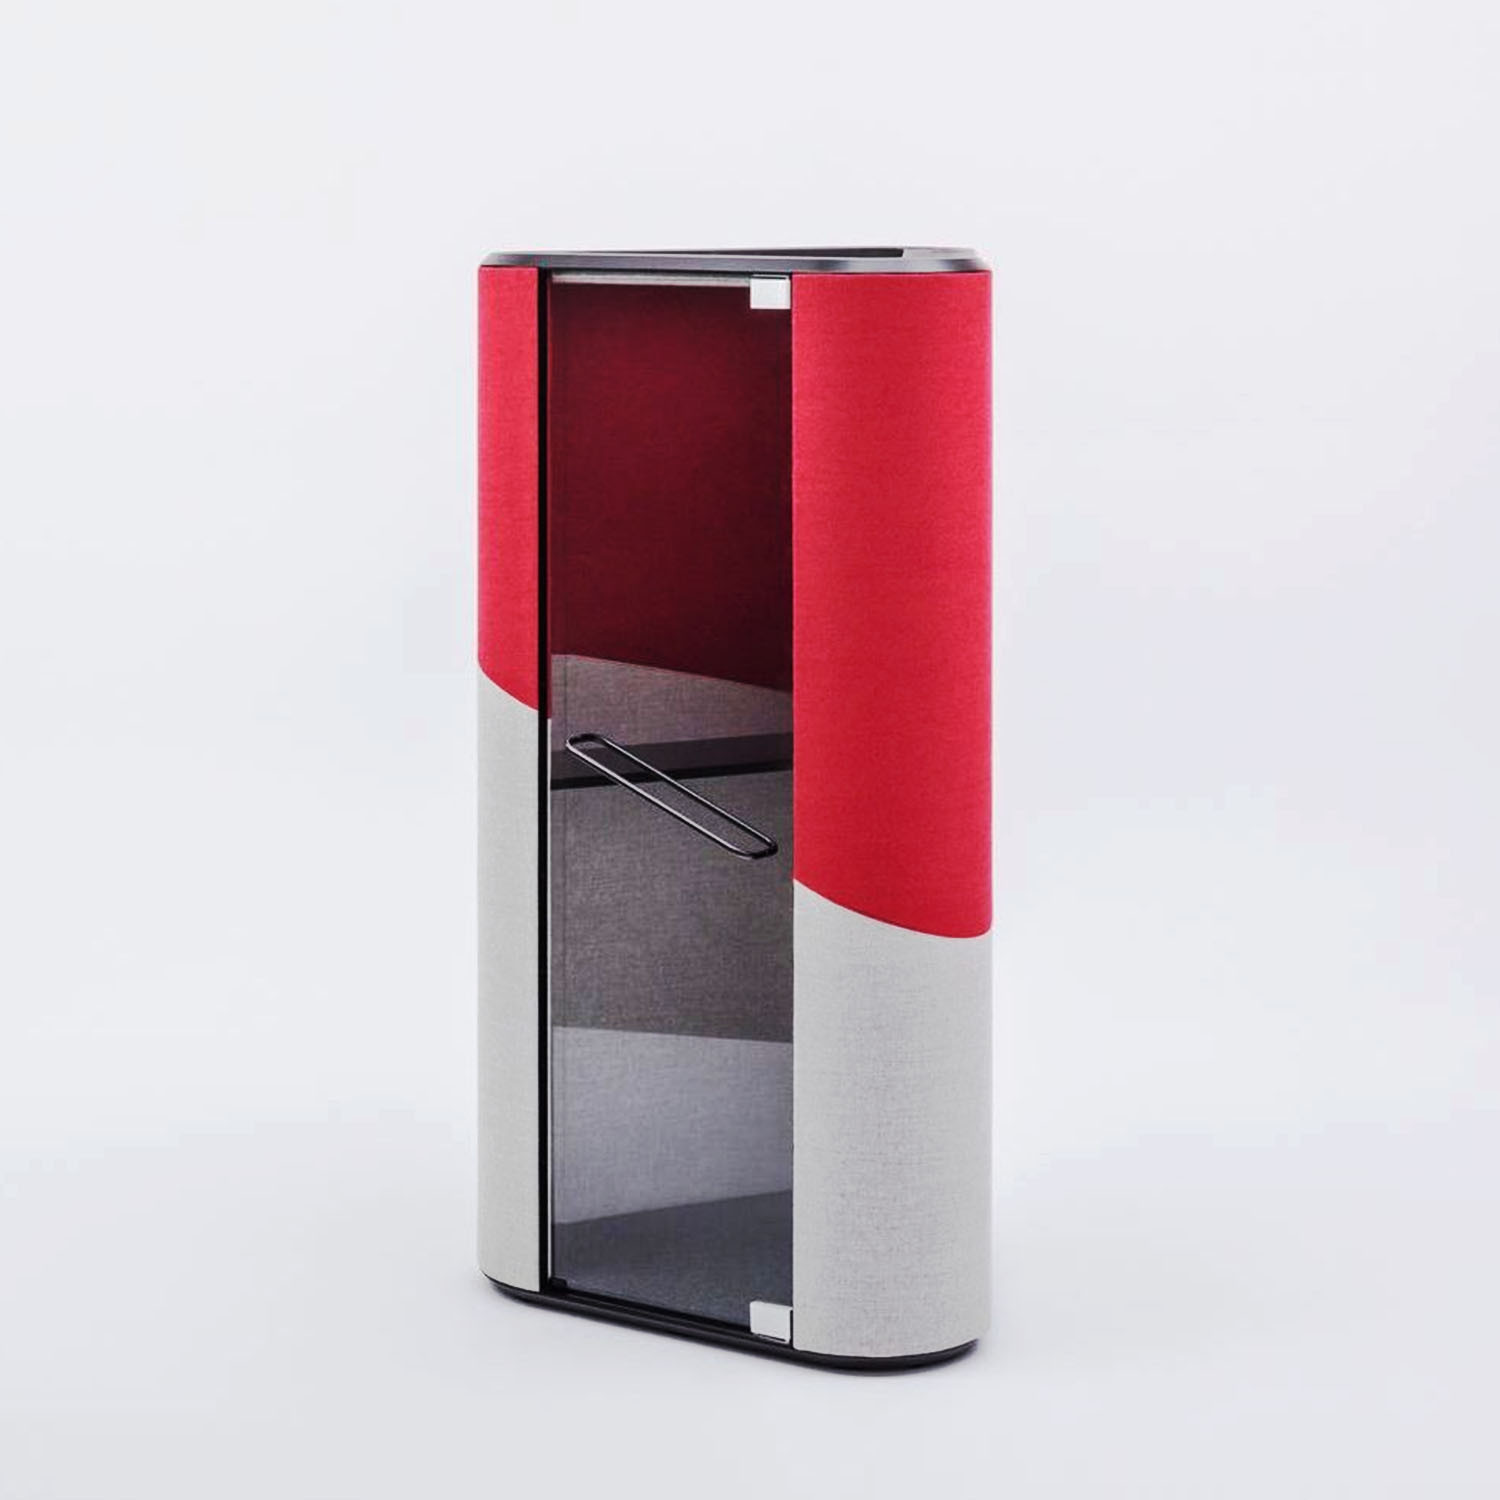 Hana Acoustic Phone Booth Side Angle